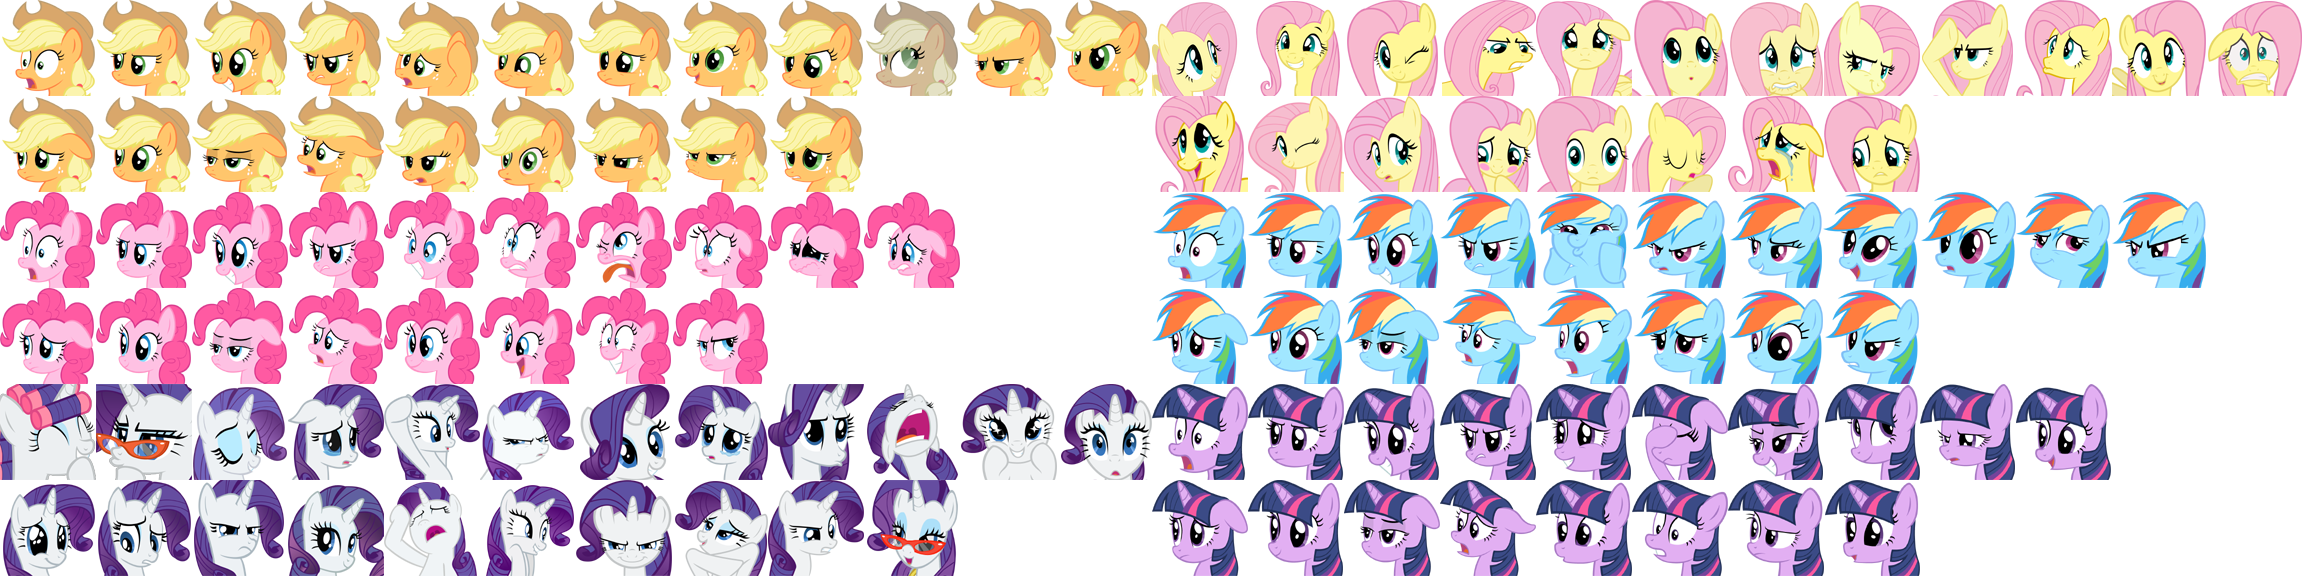 Main Six Facesets